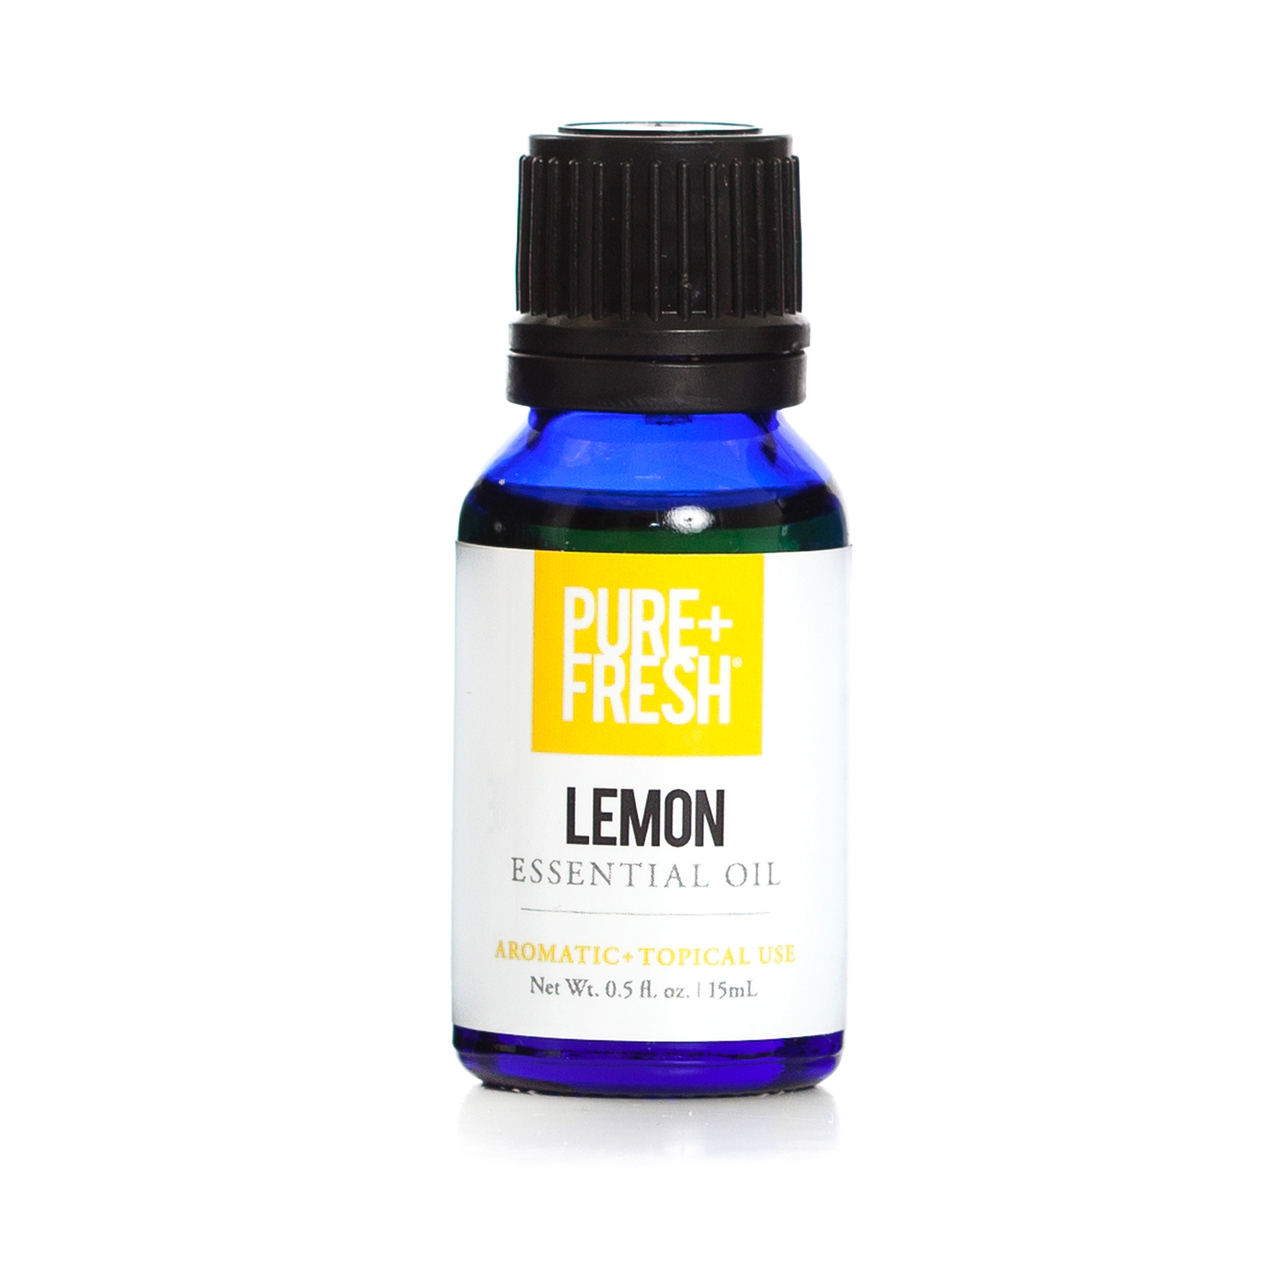 0.5fl oz. Bottle of Pure+Fresh Lemon Essential Oil